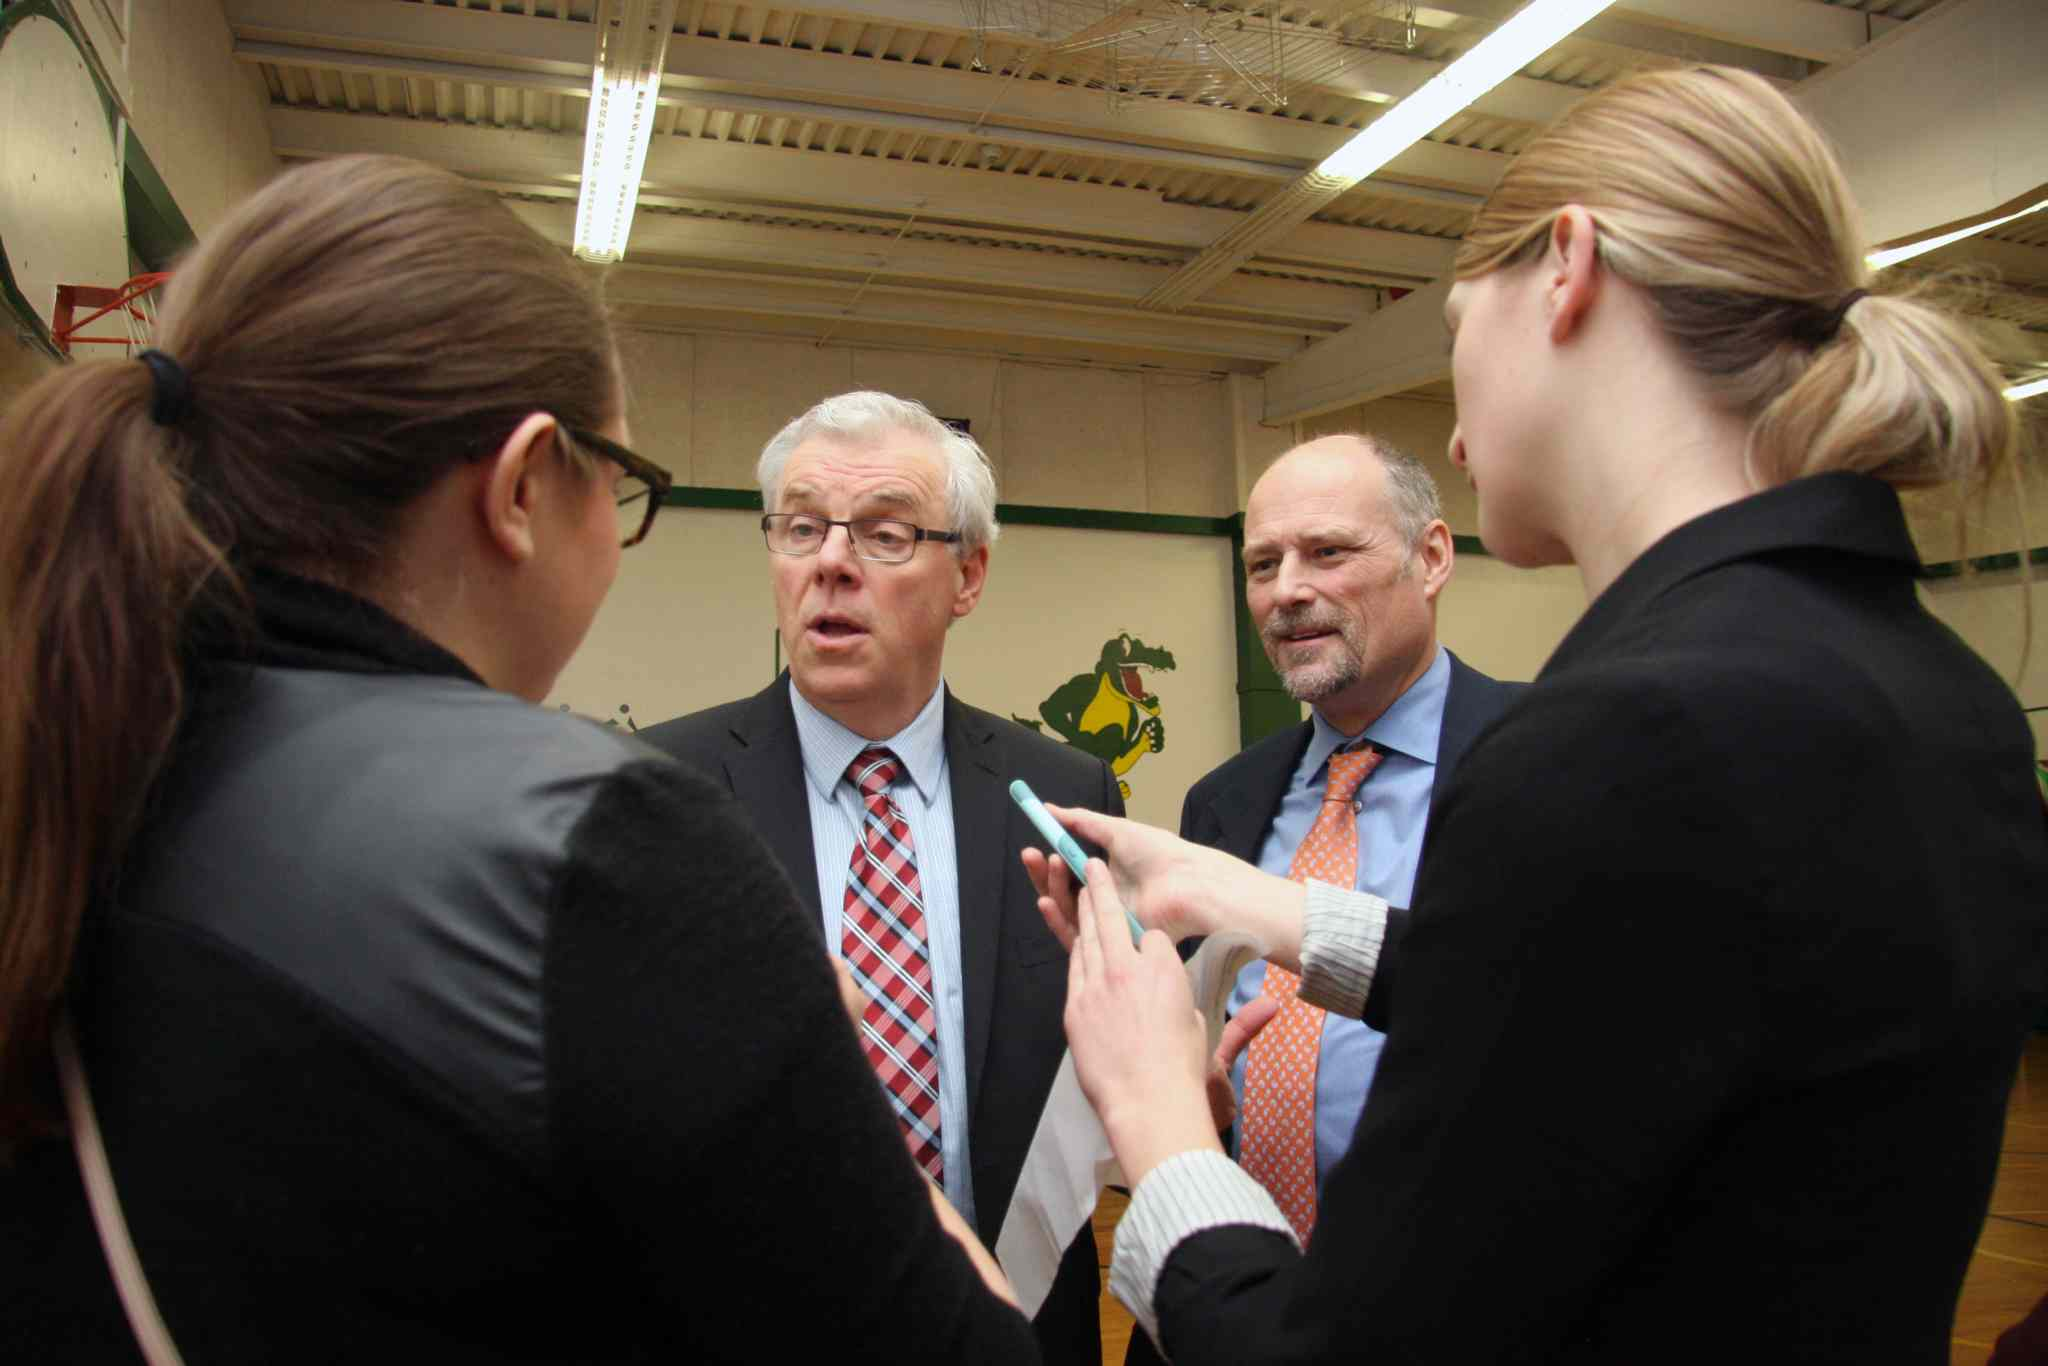 Brandon Sun Manitoba NDP Premier Greg Selinger and Brandon East MLA Drew Caldwell speak to reporters following the announcement of a new gymnasium for Green Acres school in the Brandon School Division. (Matt Goerzen/Brandon Sun-file)